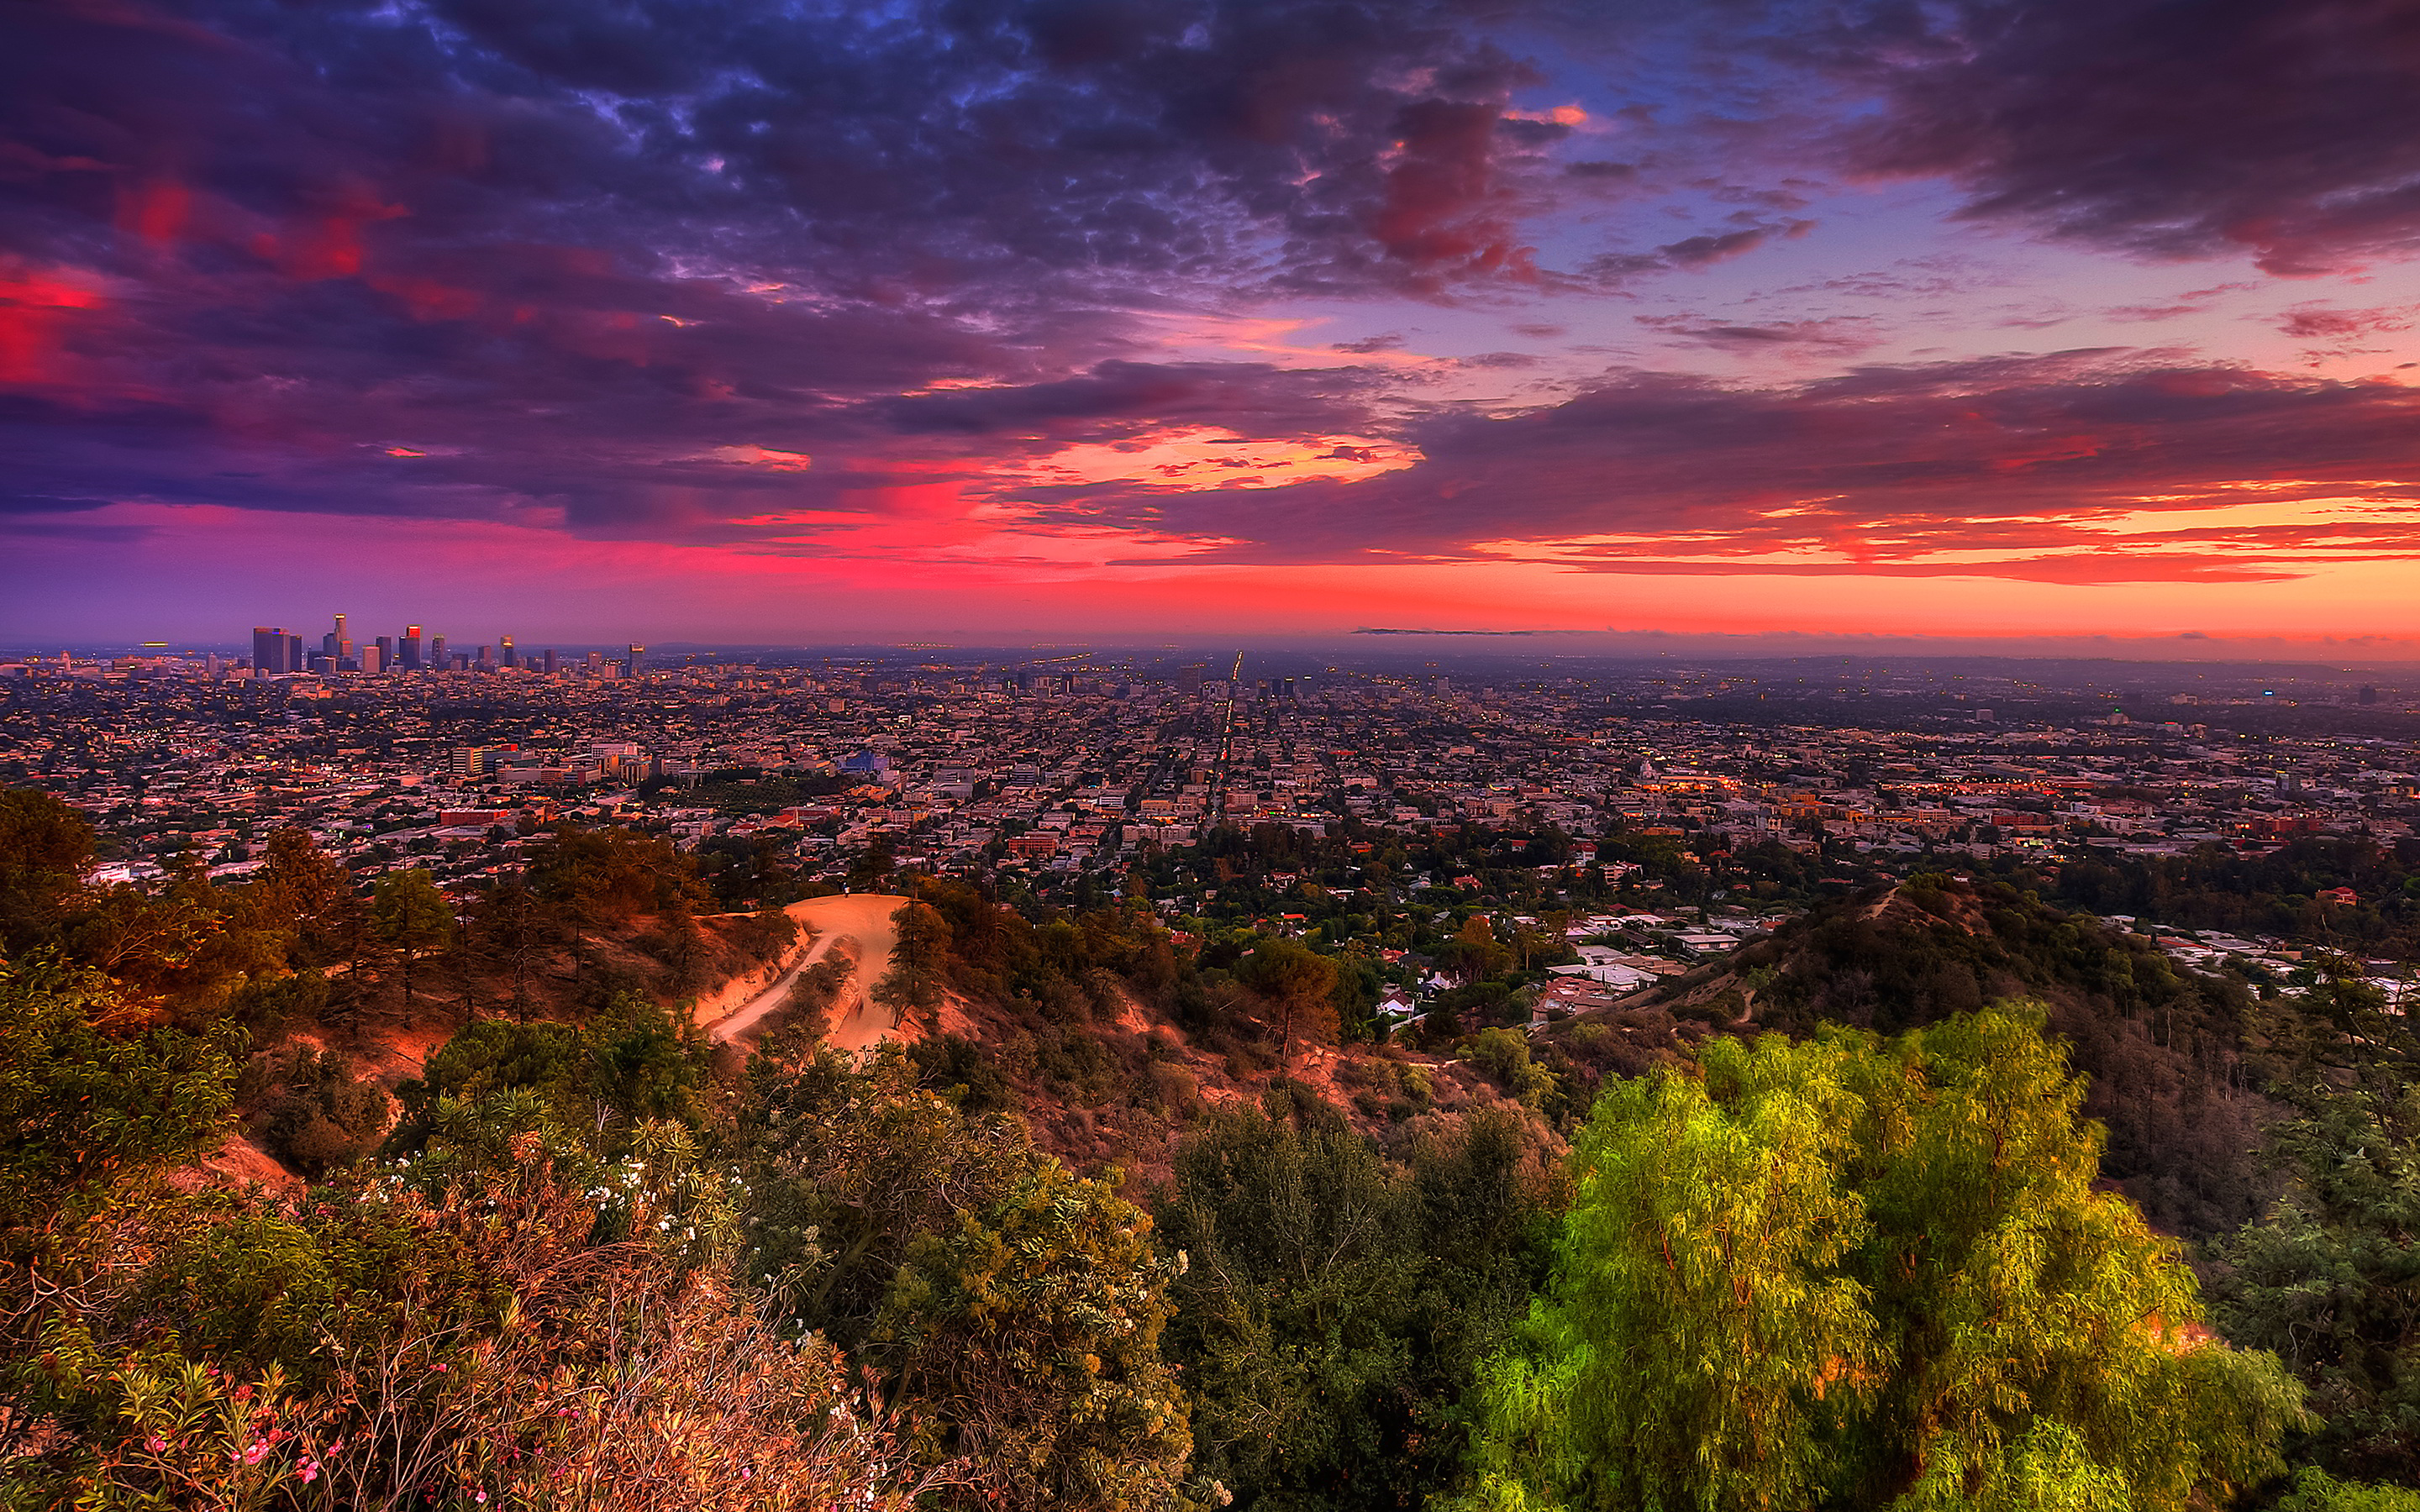 Sunset over la